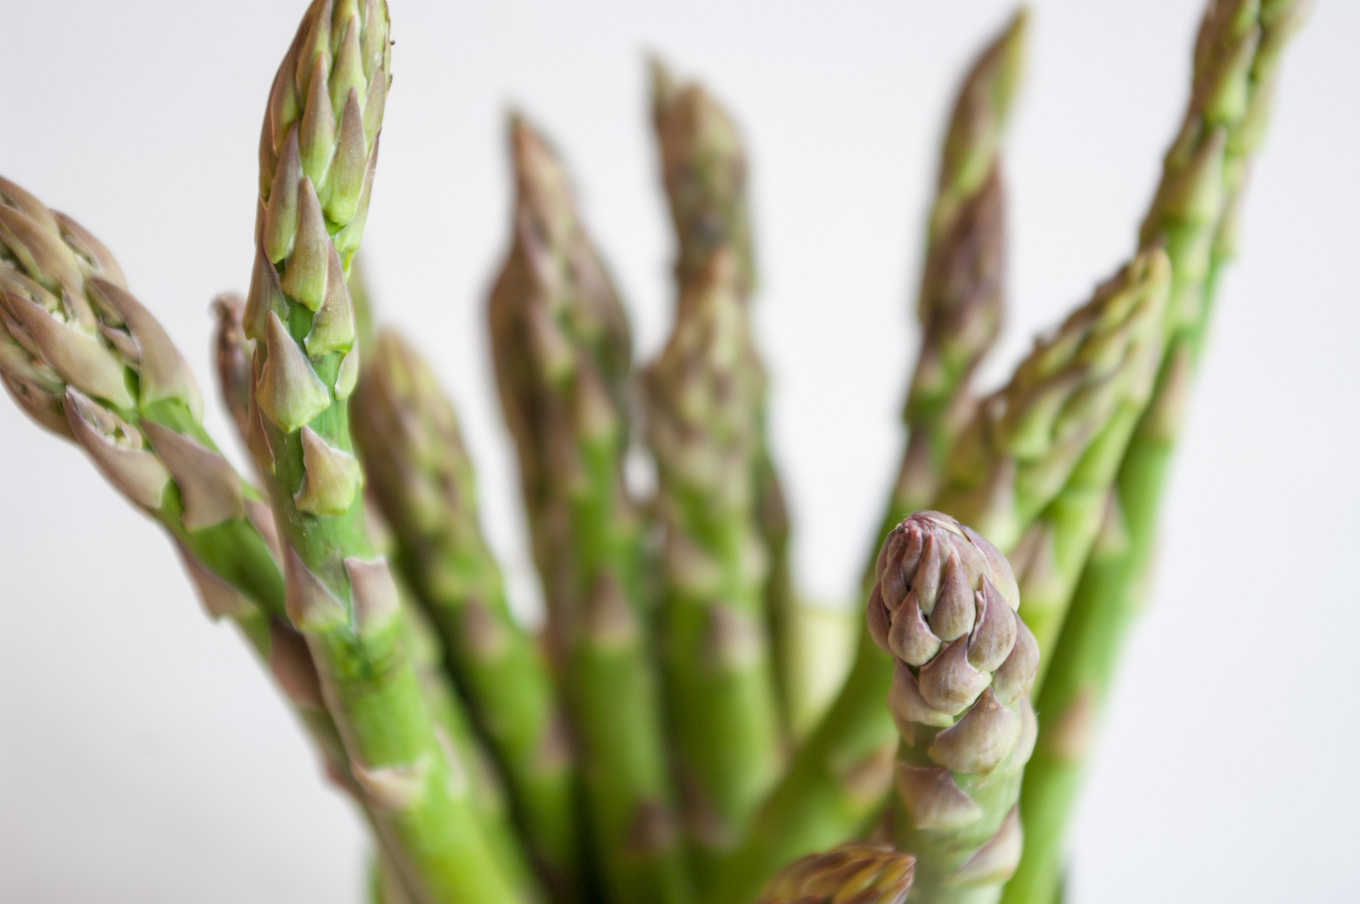 Asparagus Canapés with Parmesan –  Delicate asparagus canapés with sourdough toast, asparagus cream, radish and Parmesan cheese (vegan canapé option available). Great vegetarian party food or spring wedding food. By @deliciouscratch | deliciousfromscratch.com